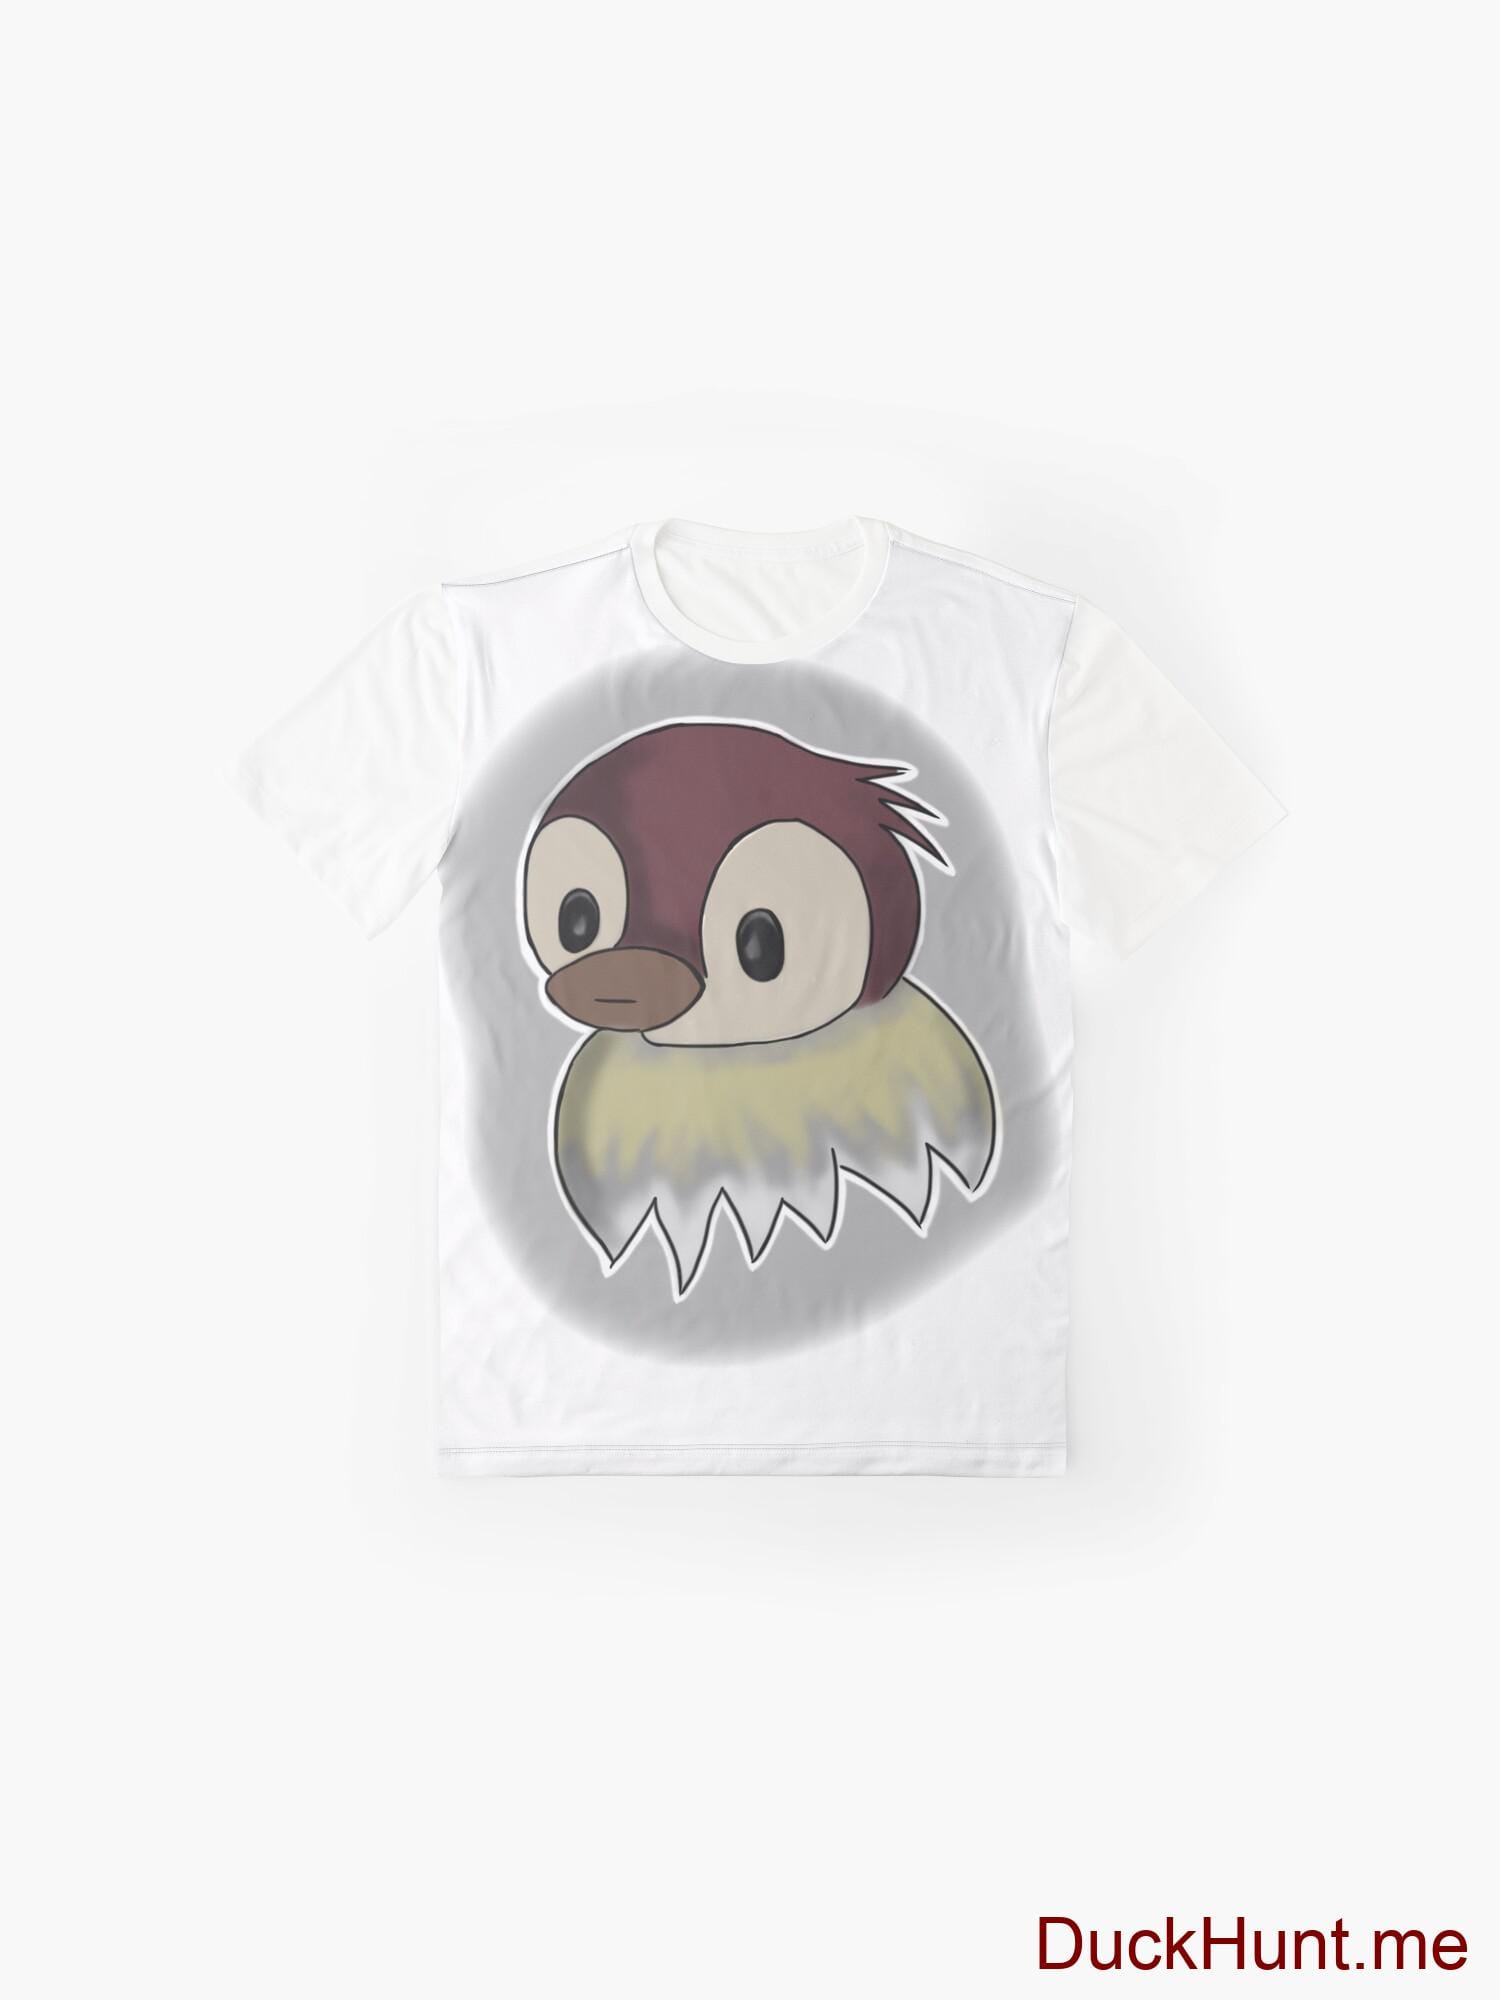 Ghost Duck (foggy) White Graphic T-Shirt alternative image 3